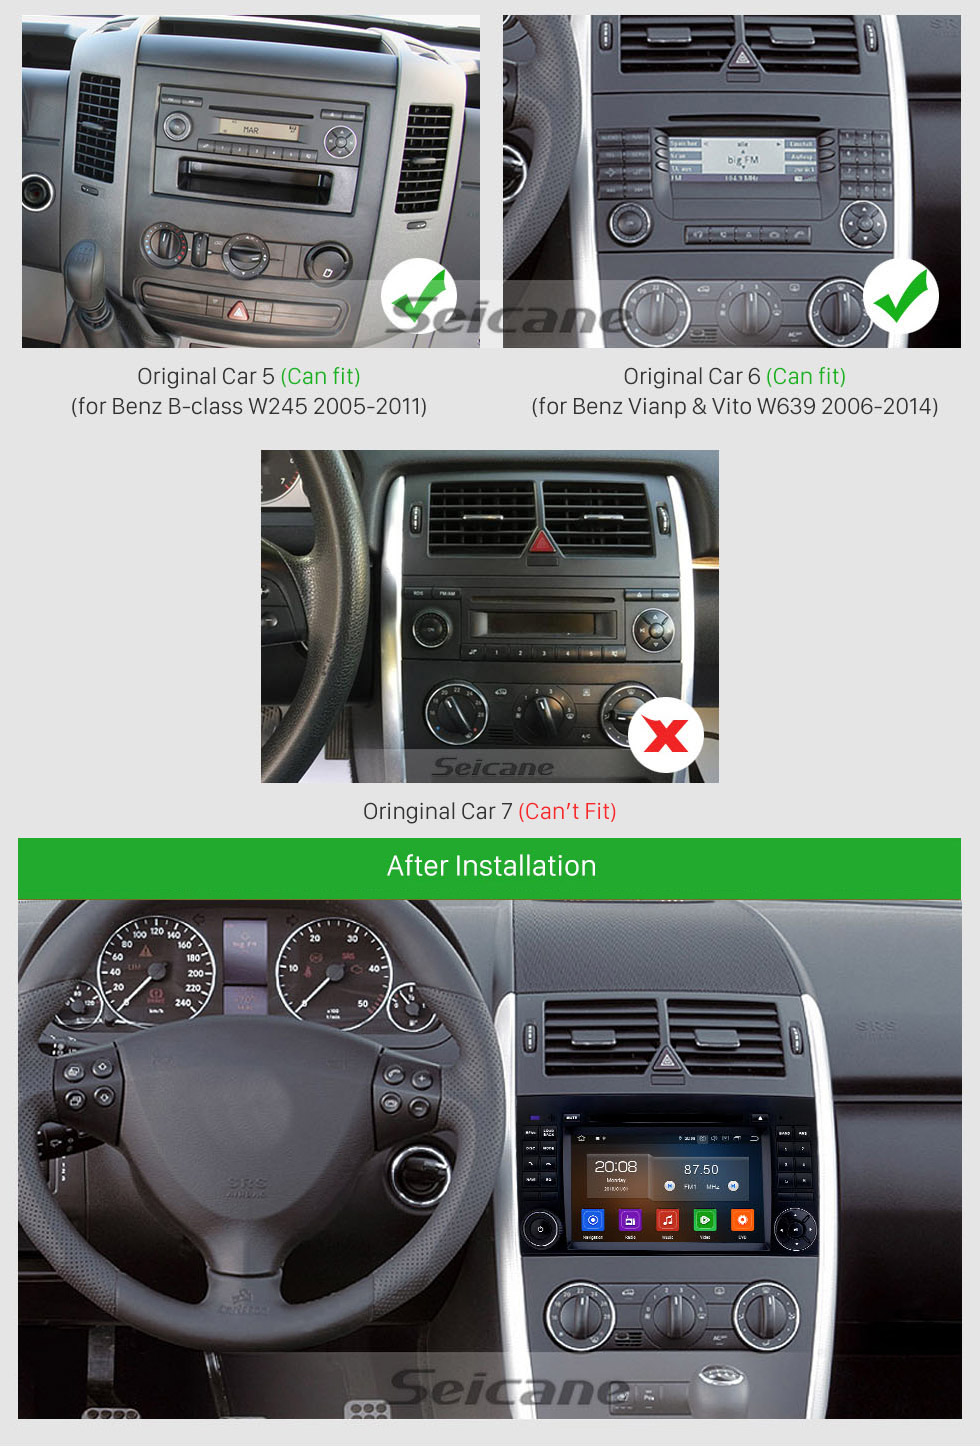 Seicane HD Touchscreen 7 inch Android 9.0 GPS Navigation Radio for 2006-2012 Mercedes Benz Viano Vito Bluetooth Carplay USB AUX support DVR Backup camera